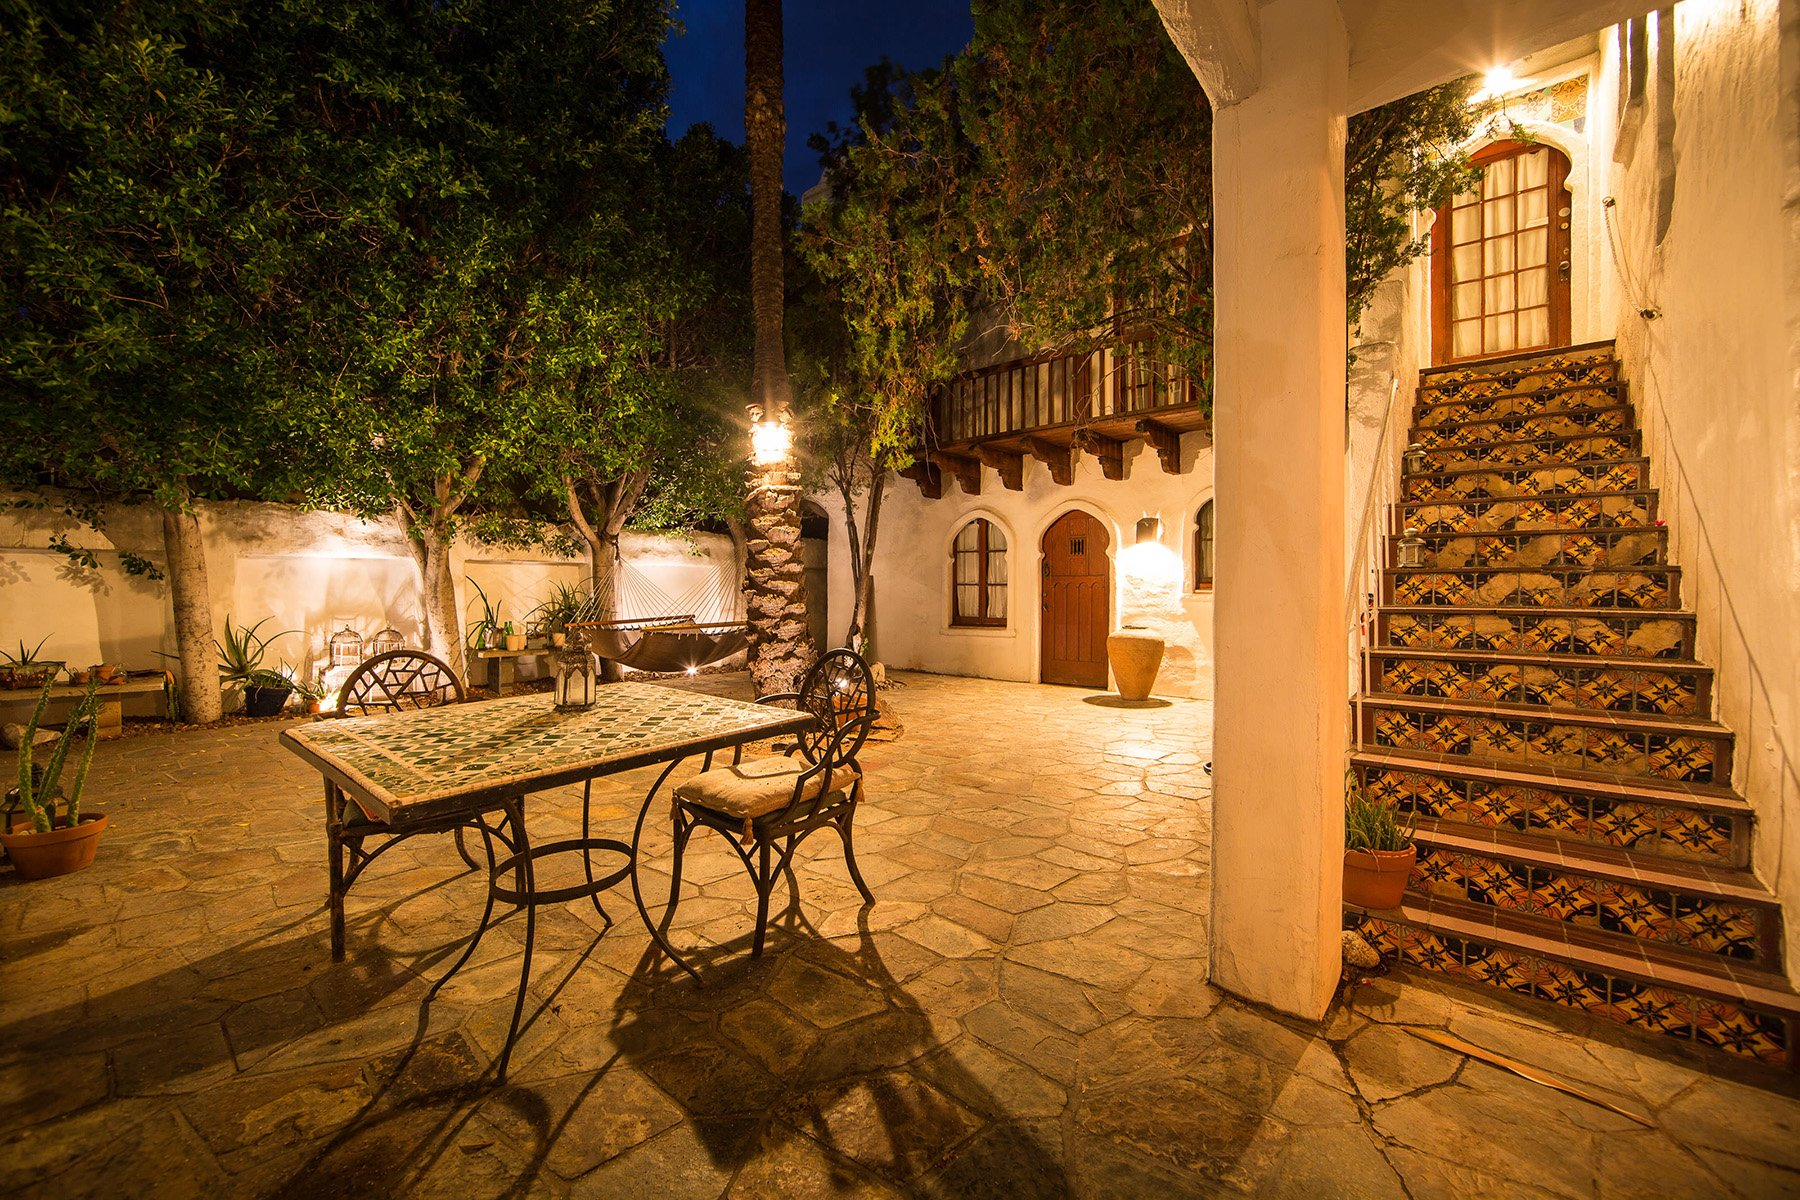 korakia pensione.palm springs.07.2015-115.high resolution sm2.jpg